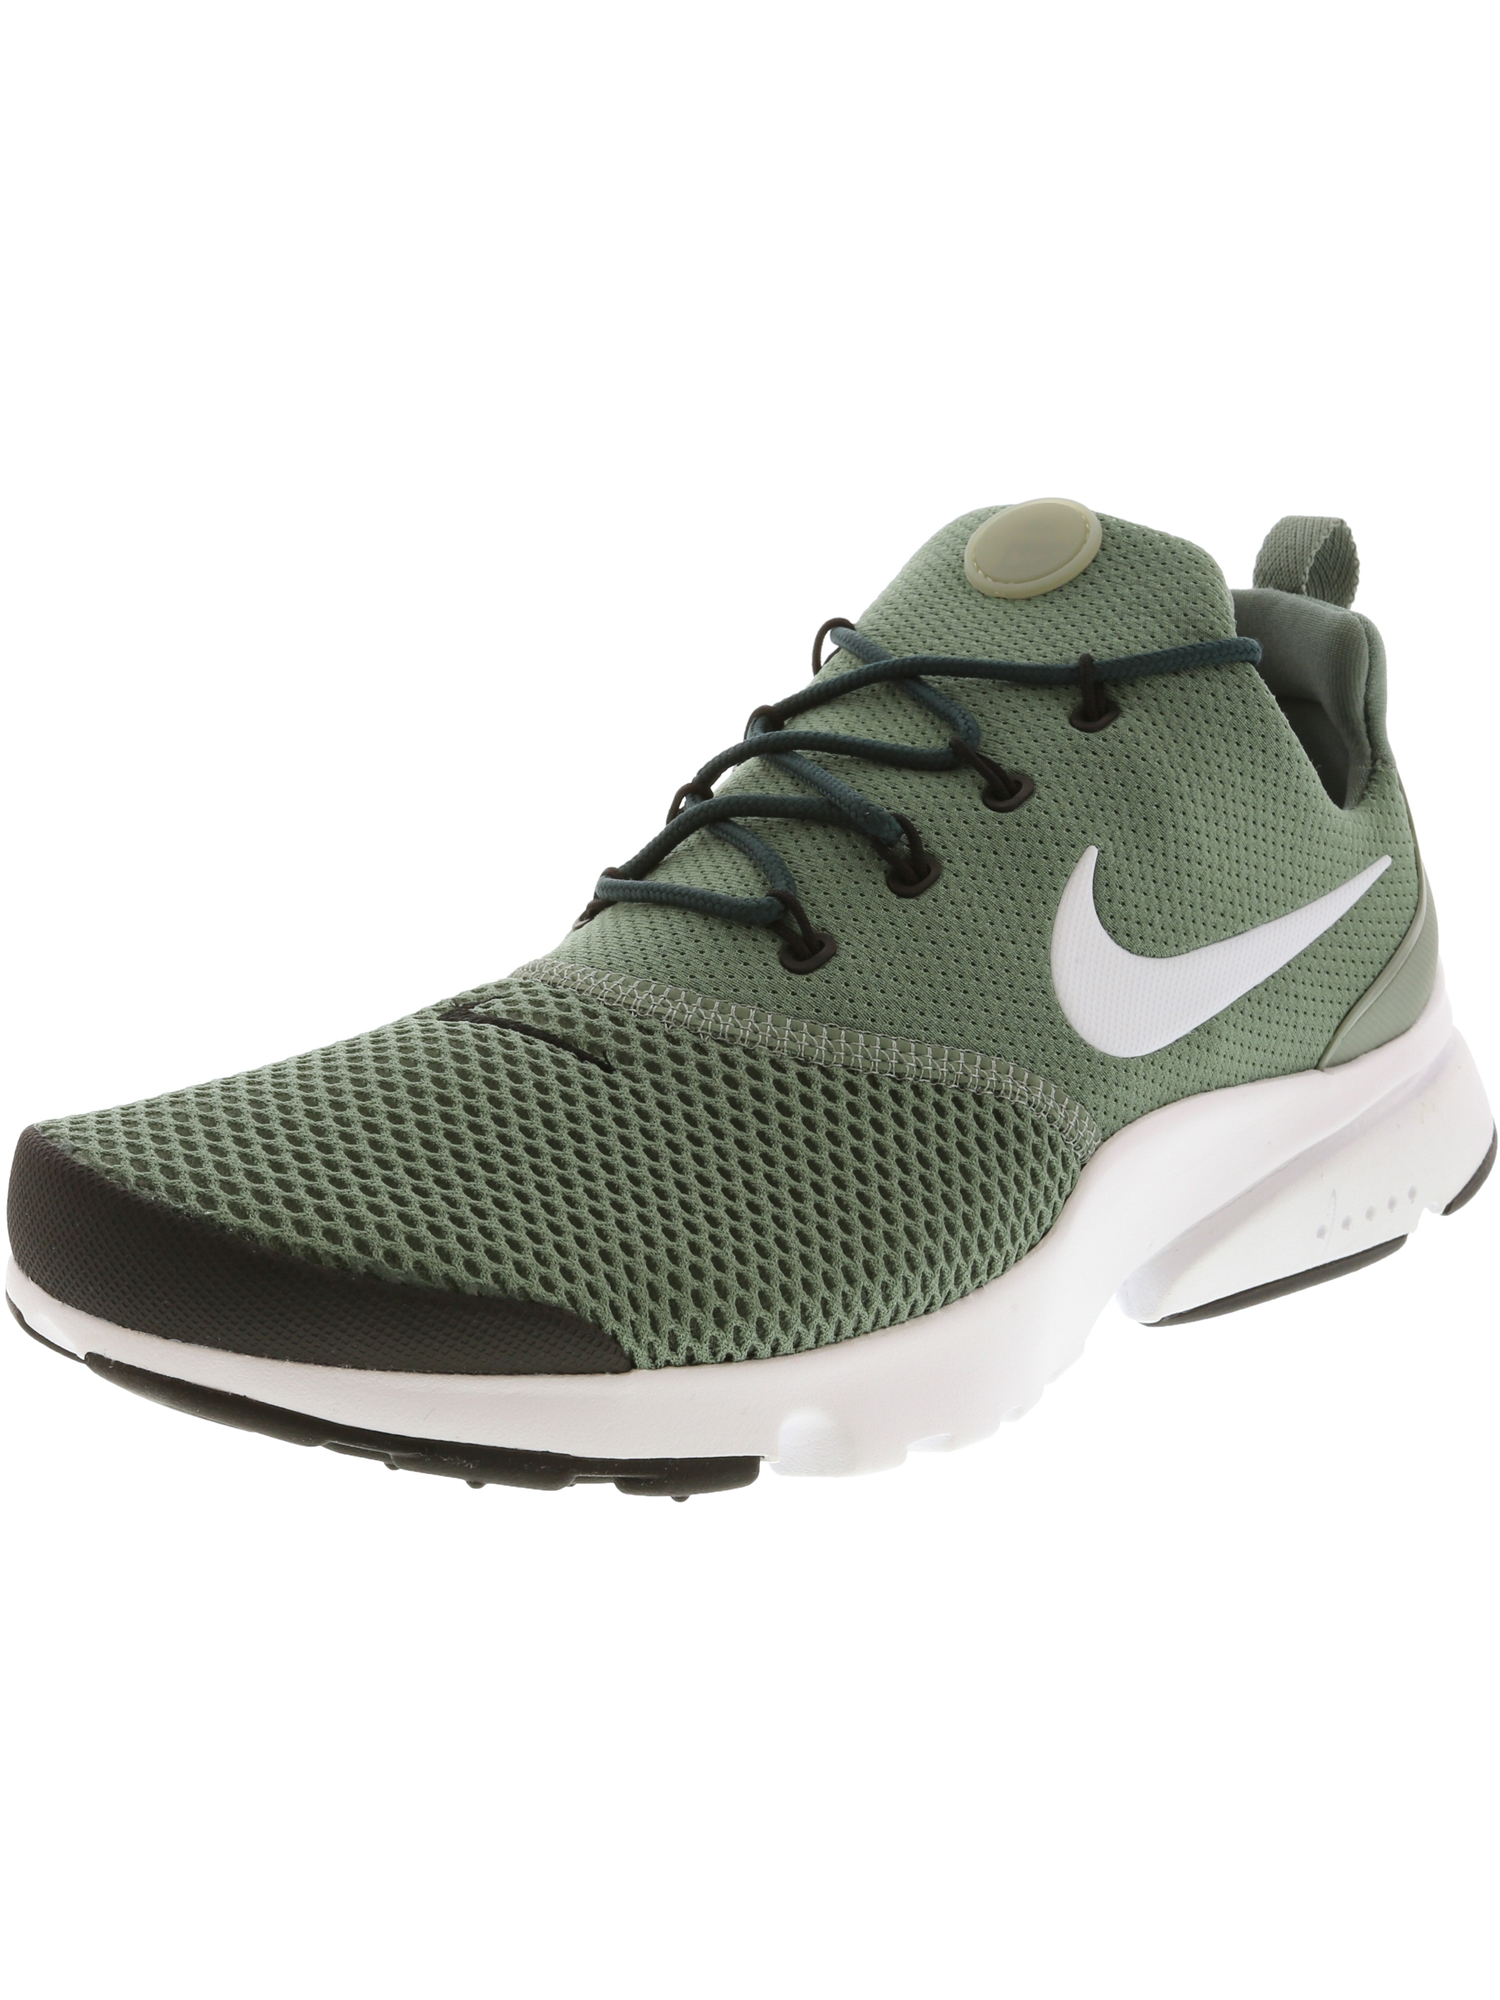 a2ec534ce6f0 Nike Men s Presto Fly Clay Green   White - Black Ankle-High Mesh Running  Shoe 10M